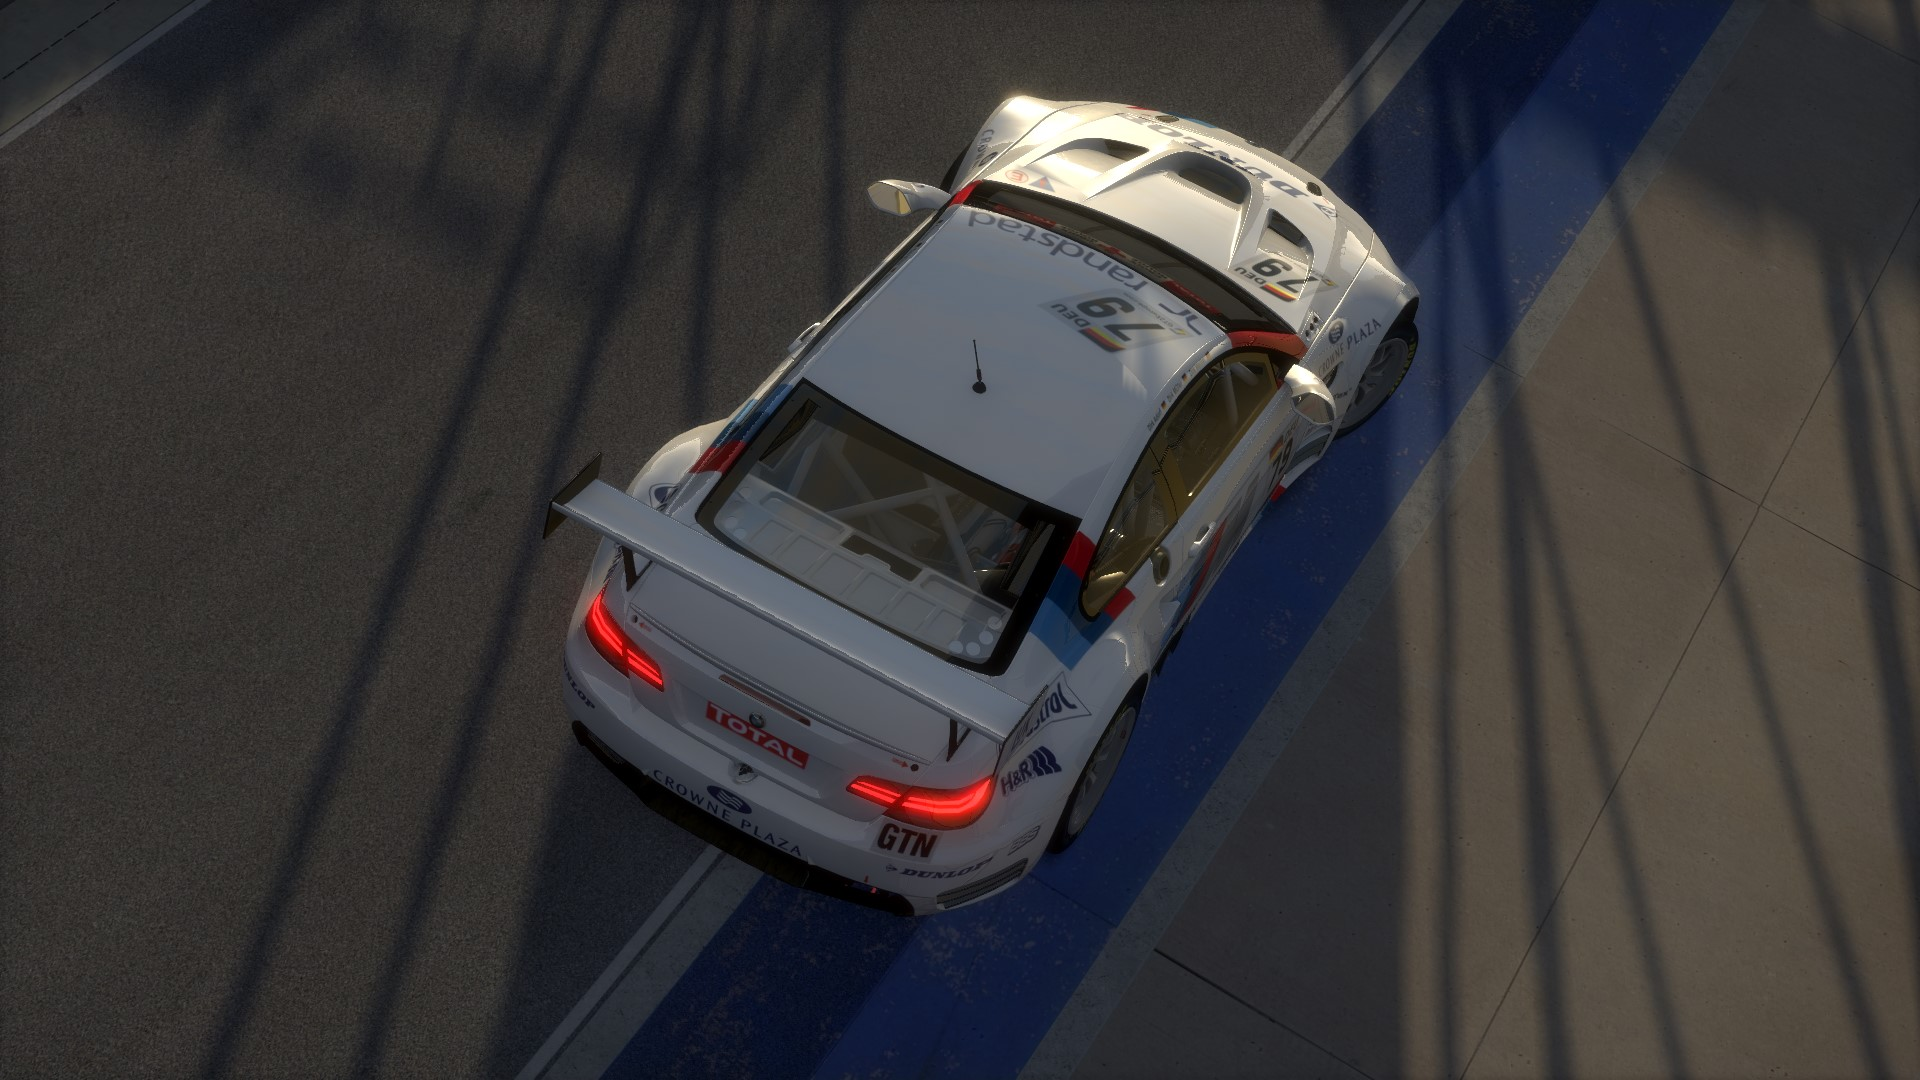 Screenshot_bmw_m3_gt2_silverstone_5-12-2014-15-28-3.jpg